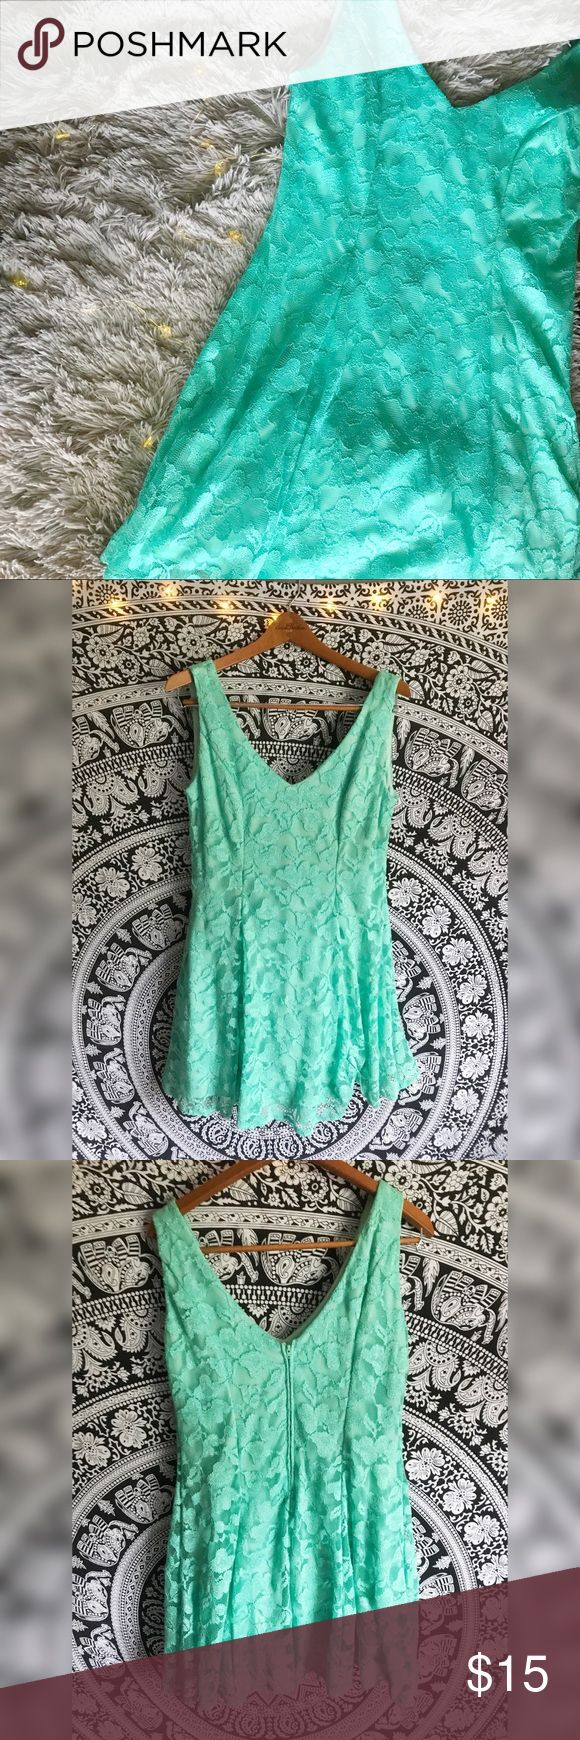 B. Smart Mint Green Princess Seam Dress With Lace. B. Smart Blue Princess Seam Dress With Lace. Glittery, floral lace overlay with fully lined inside. Princess seam with v-neck. 95% polyester 5% spandex. Feel free to ask questions or ask for more pictures! B. Smart Dresses Mini